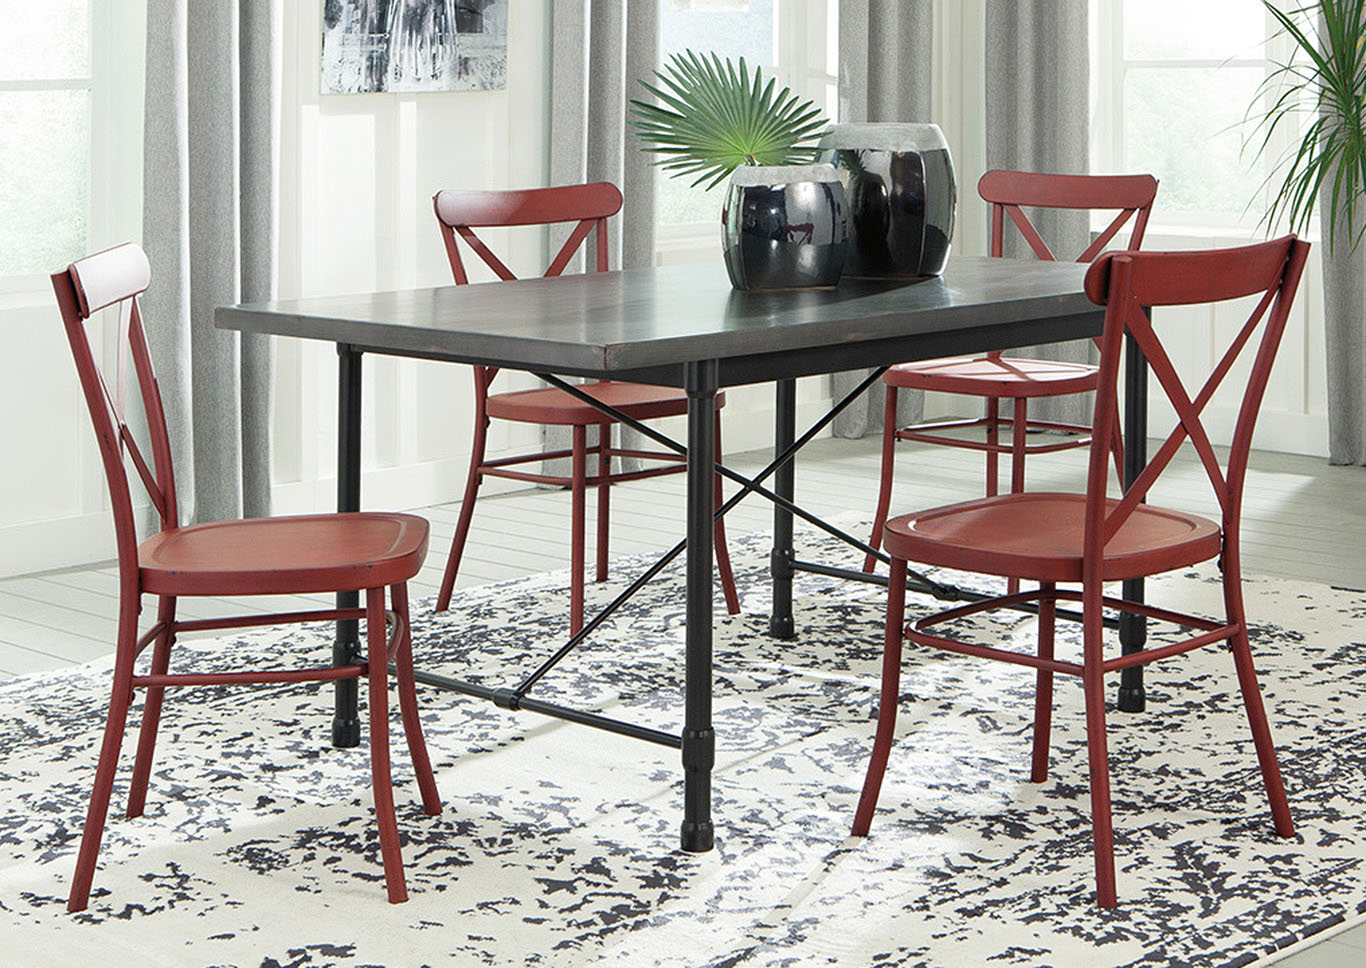 enes outlets minnona aged steel rectangular dining table w 4 red rh enesfurnitureoutlet com dining room furniture outlets dining table outlets